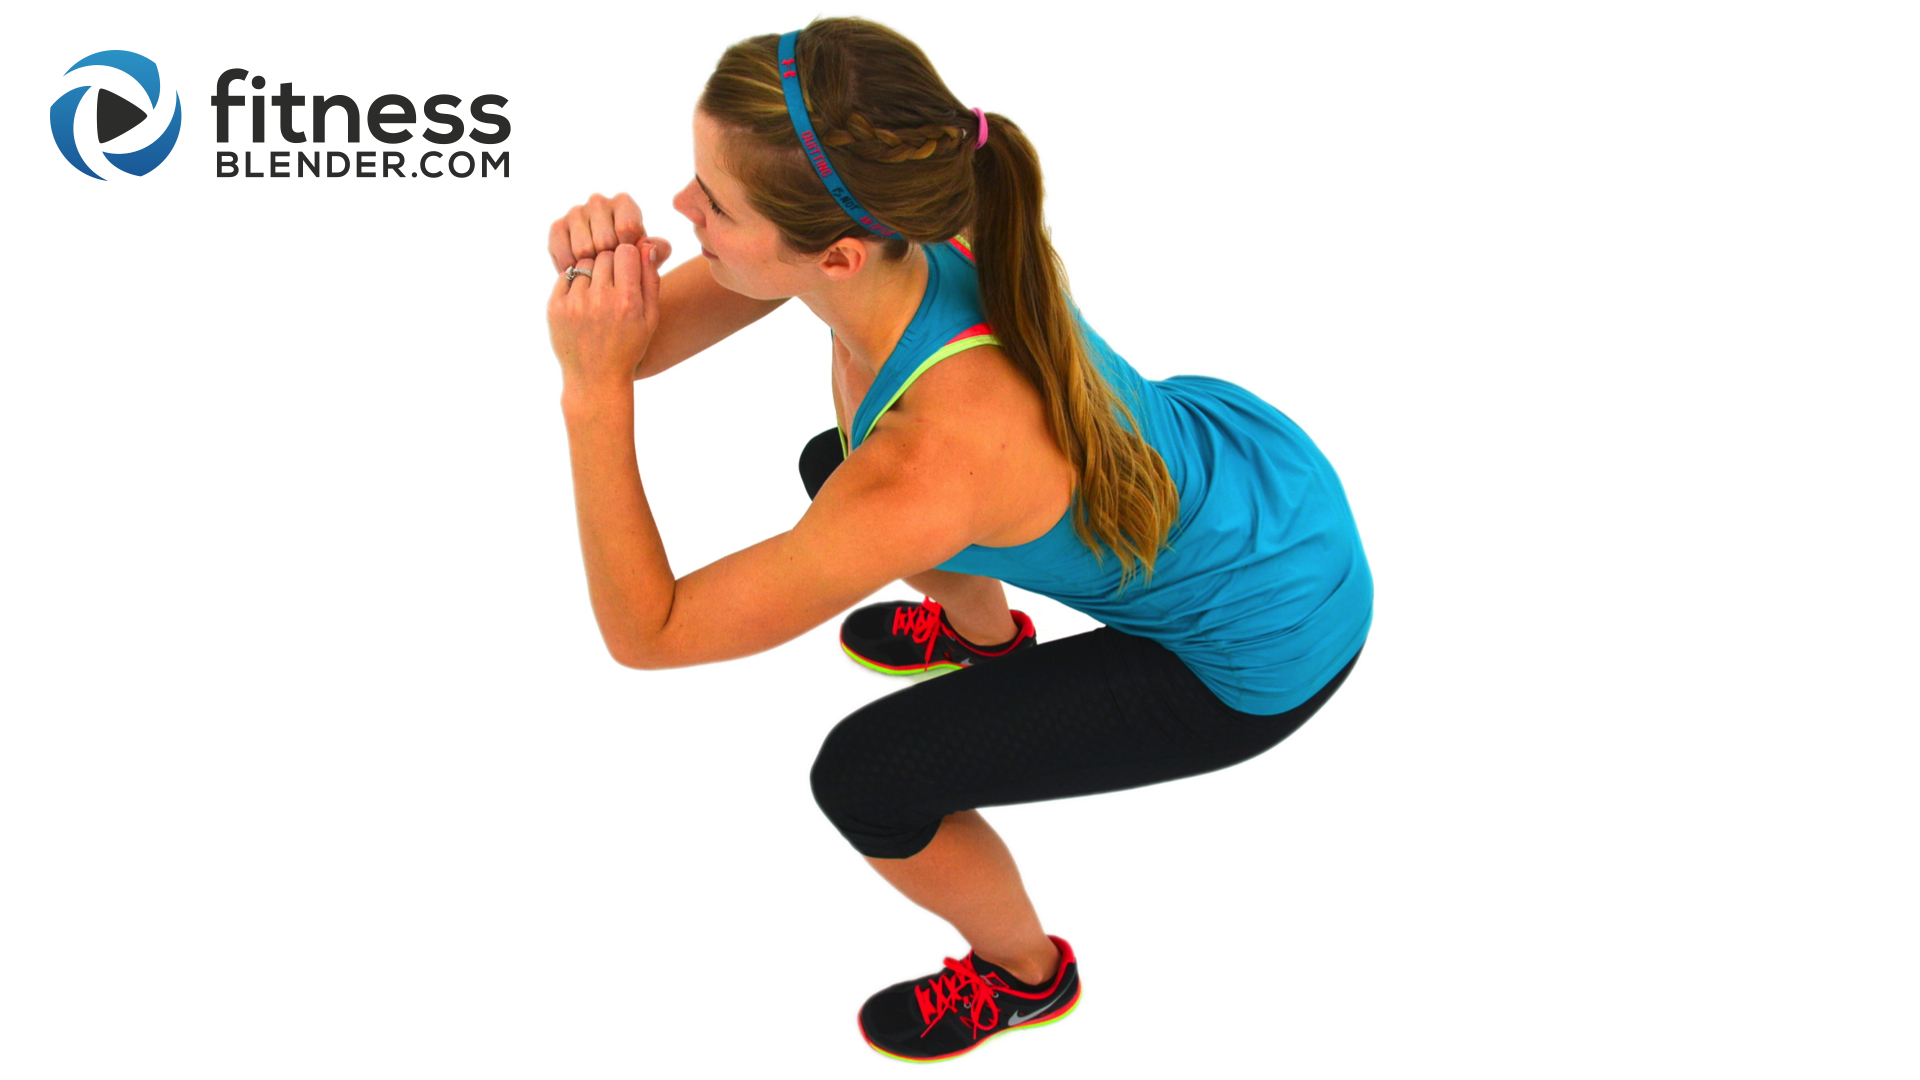 Minute Hiit Cardio And Abs Workout Fitness Blender